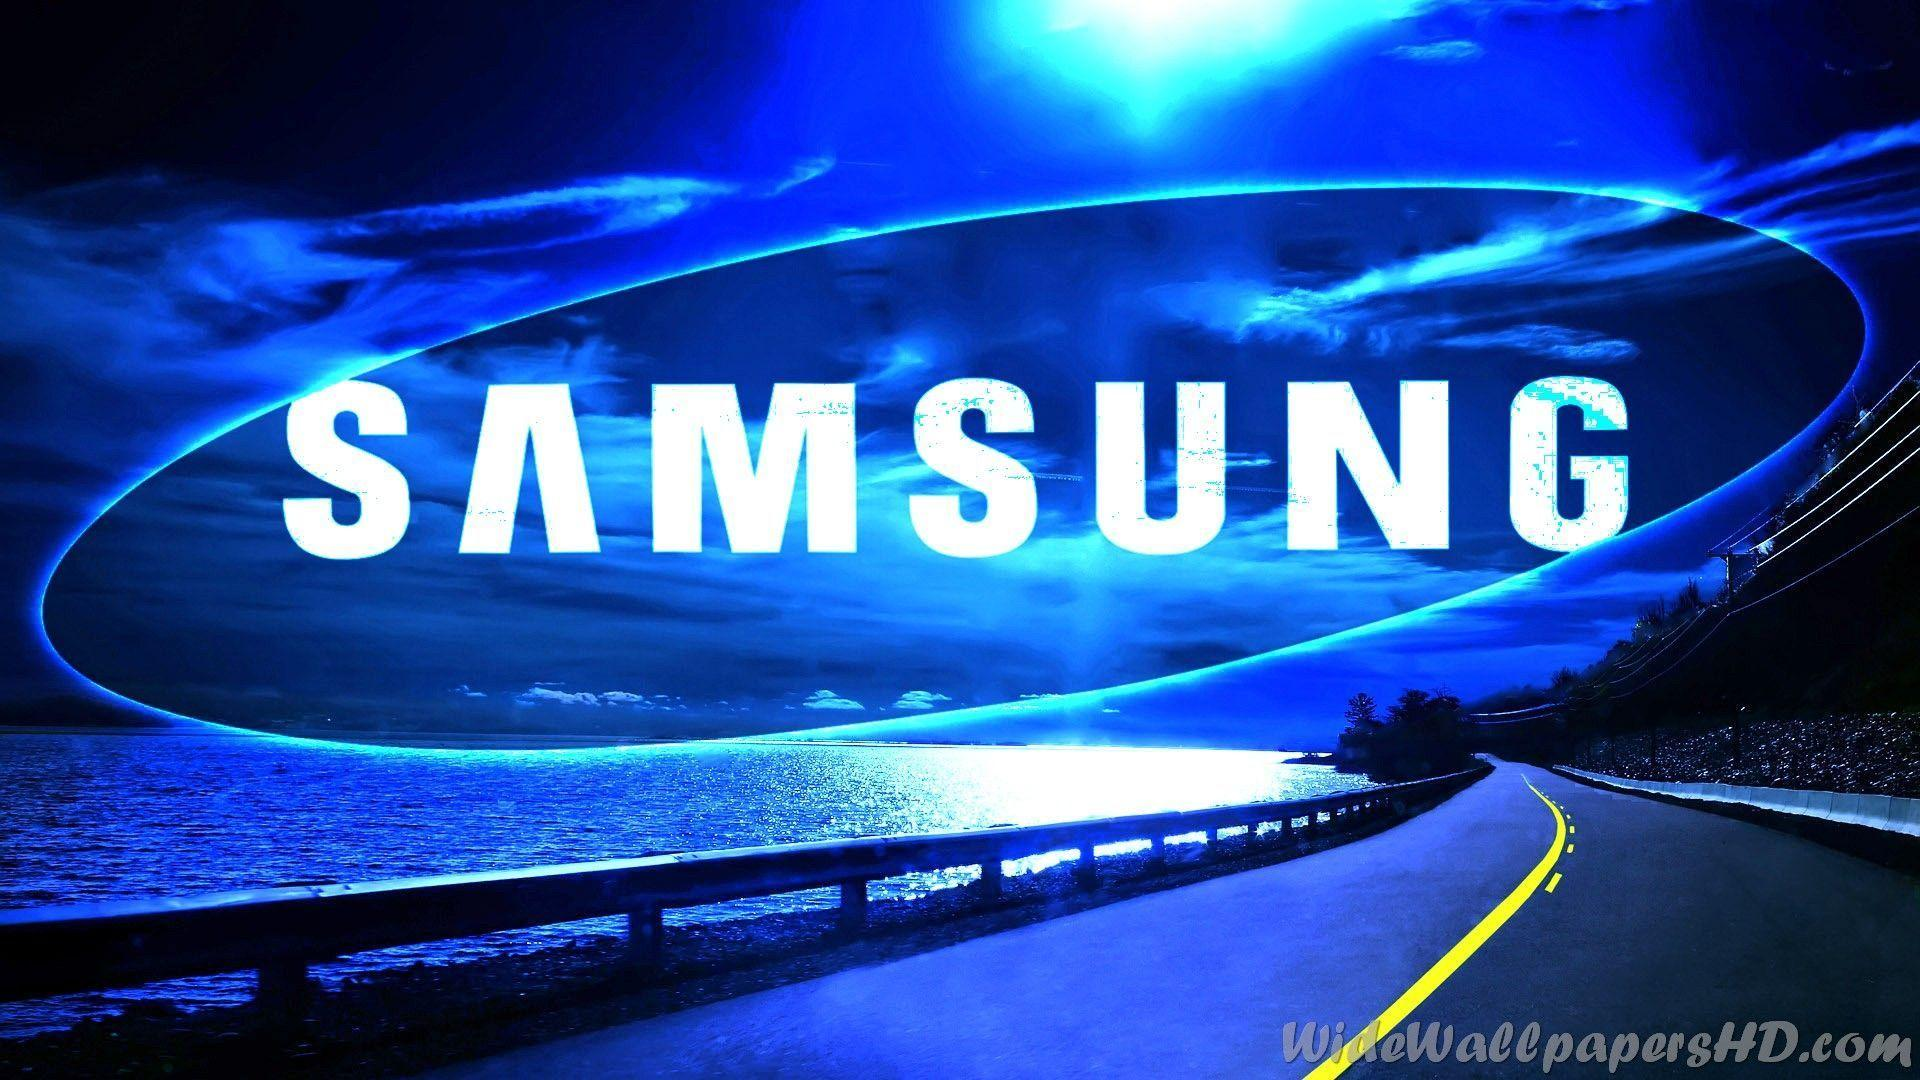 Samsung Led Tv Logo Wallpapers Wallpaper Cave